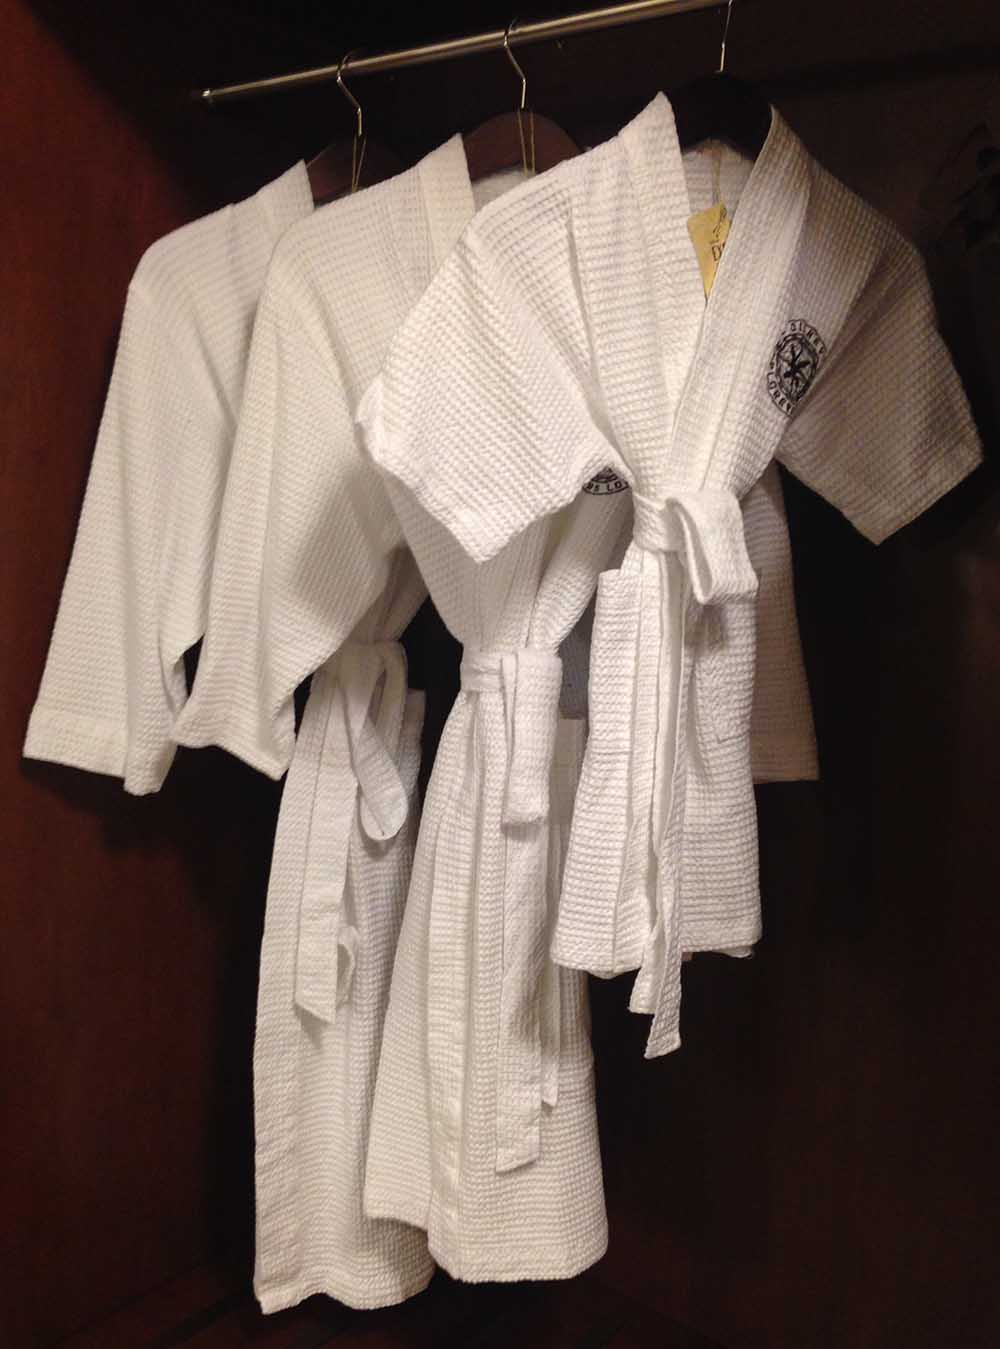 Gowns in 3 sizes at the  Disney Explorers Lodge  hotel; papa bear, mama bear, and baby bear. Too cute for words.